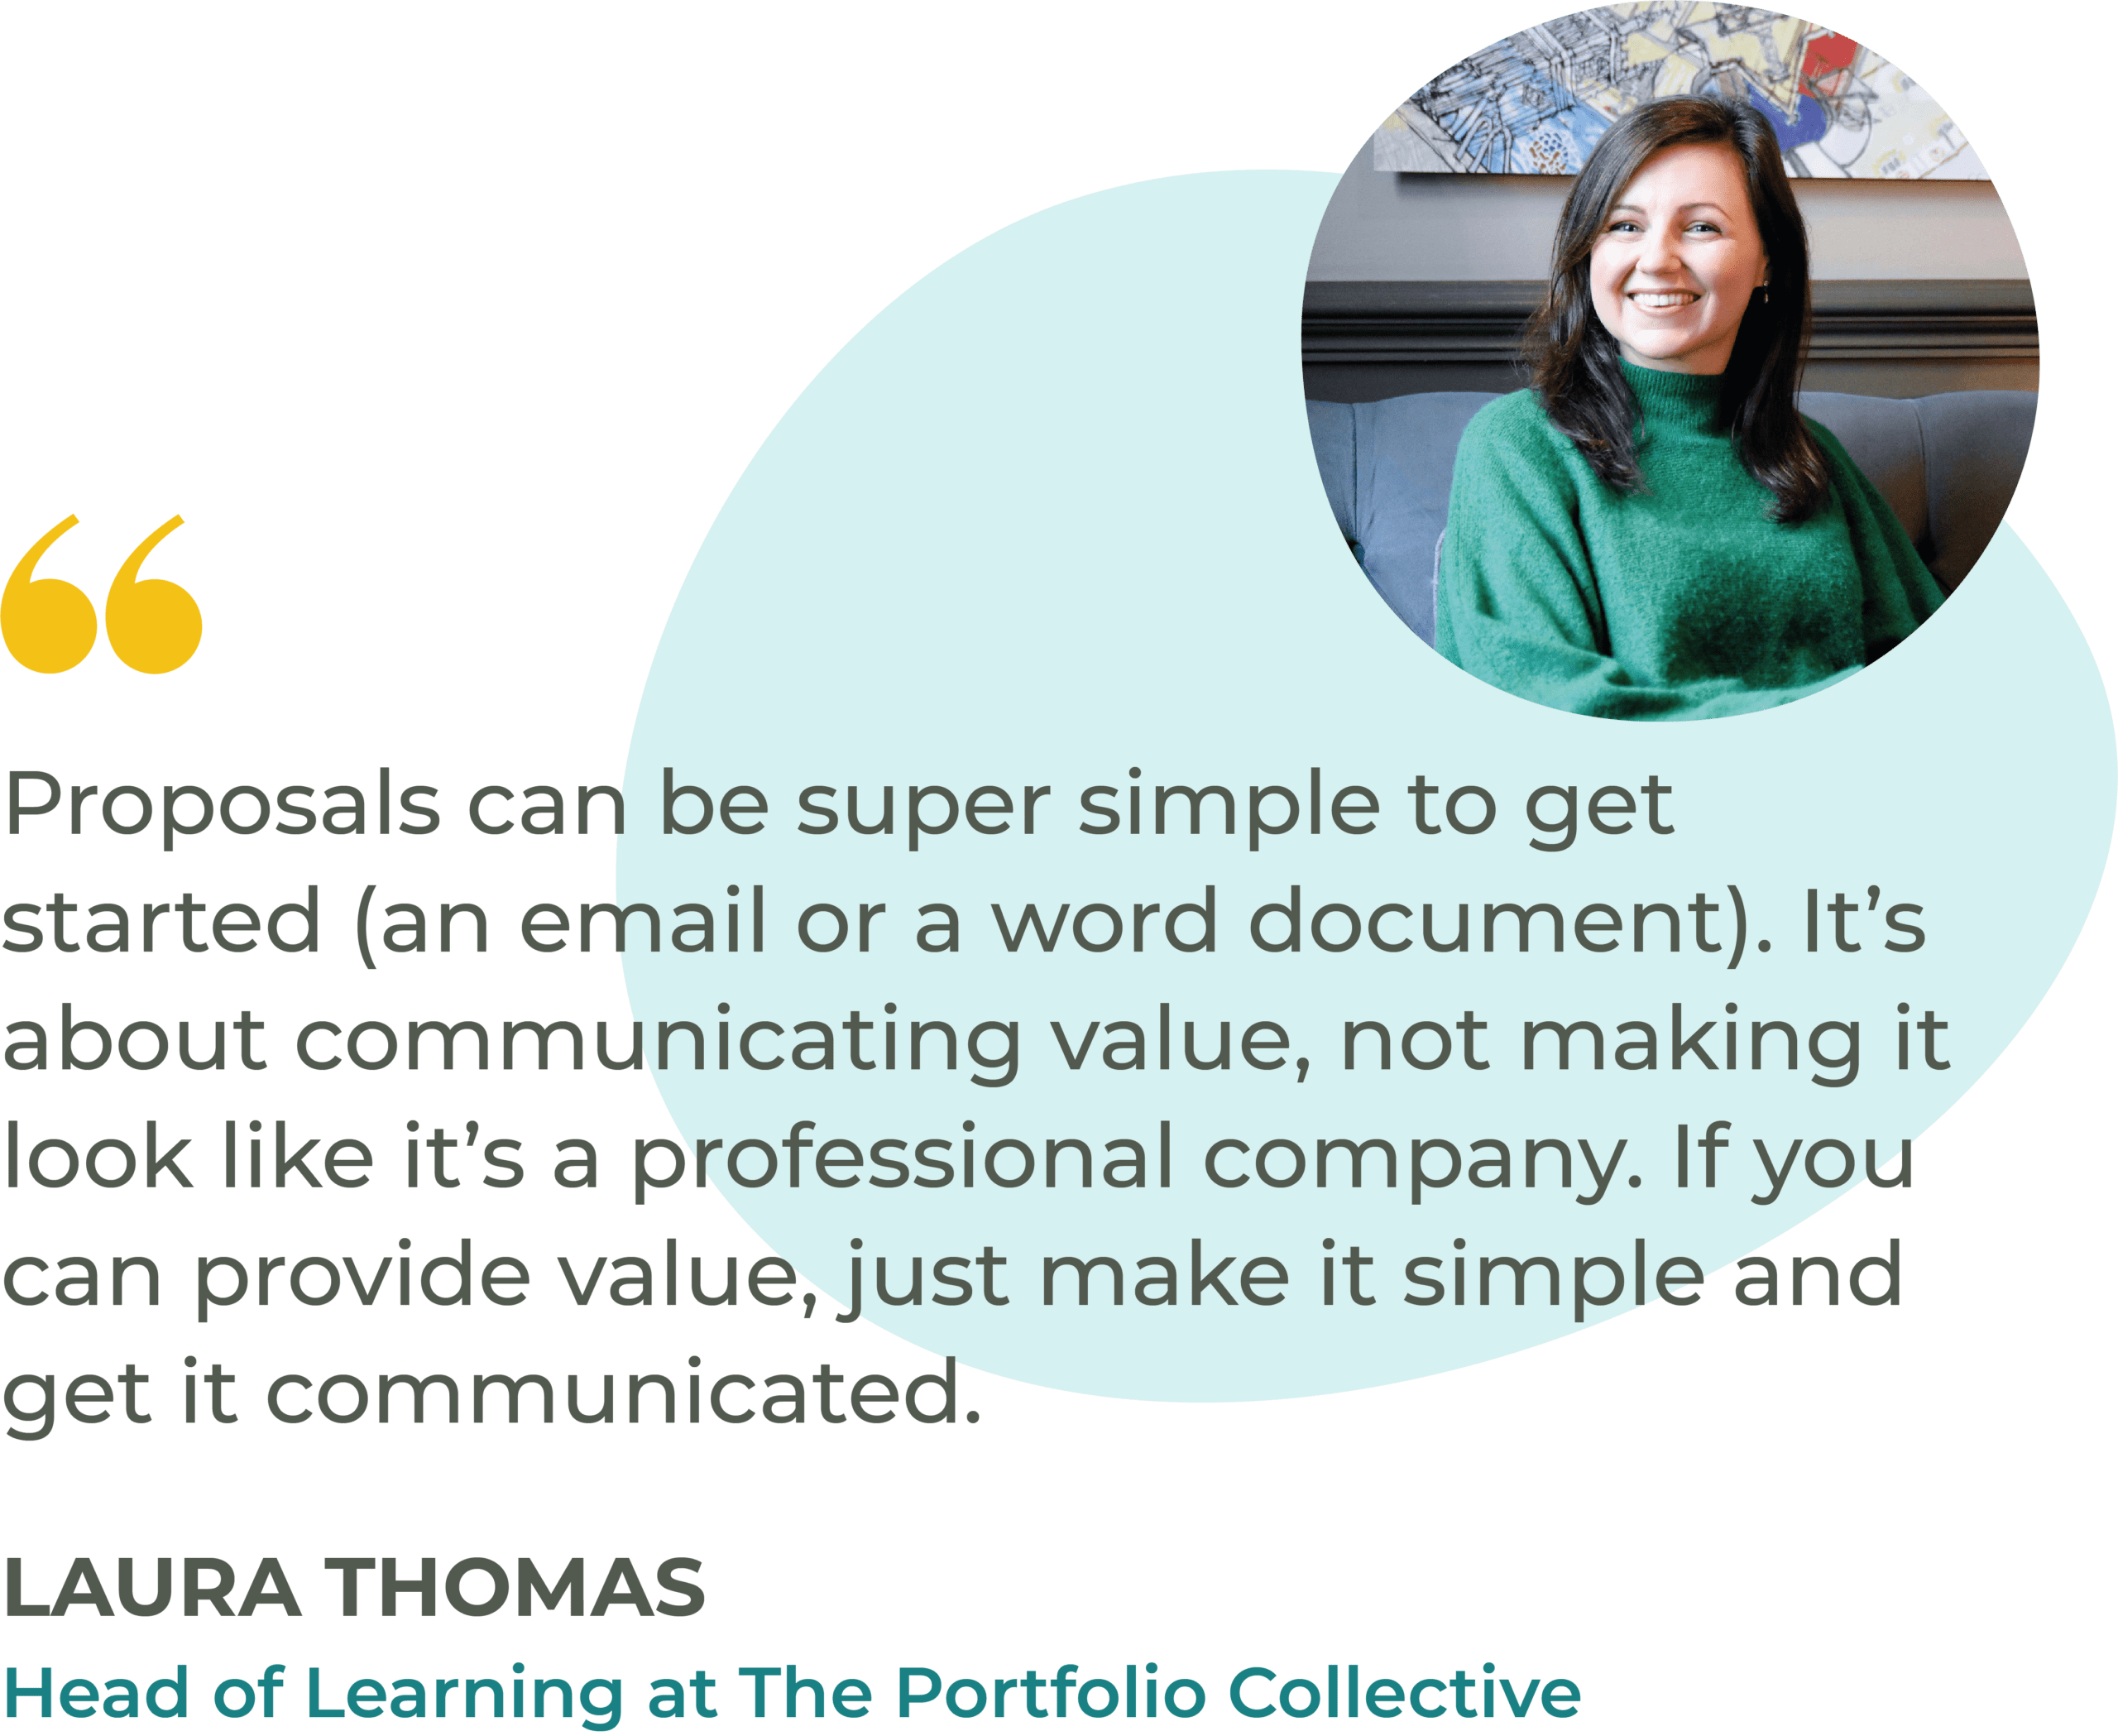 """""""Proposals can be super simple to get started (an email or a word document). It's about communicating value, not making it look like it's a professional company. If you can provide value, just make it simple and get it communicated."""" Laura Thomas, Head of Learning at The Portfolio Collective"""